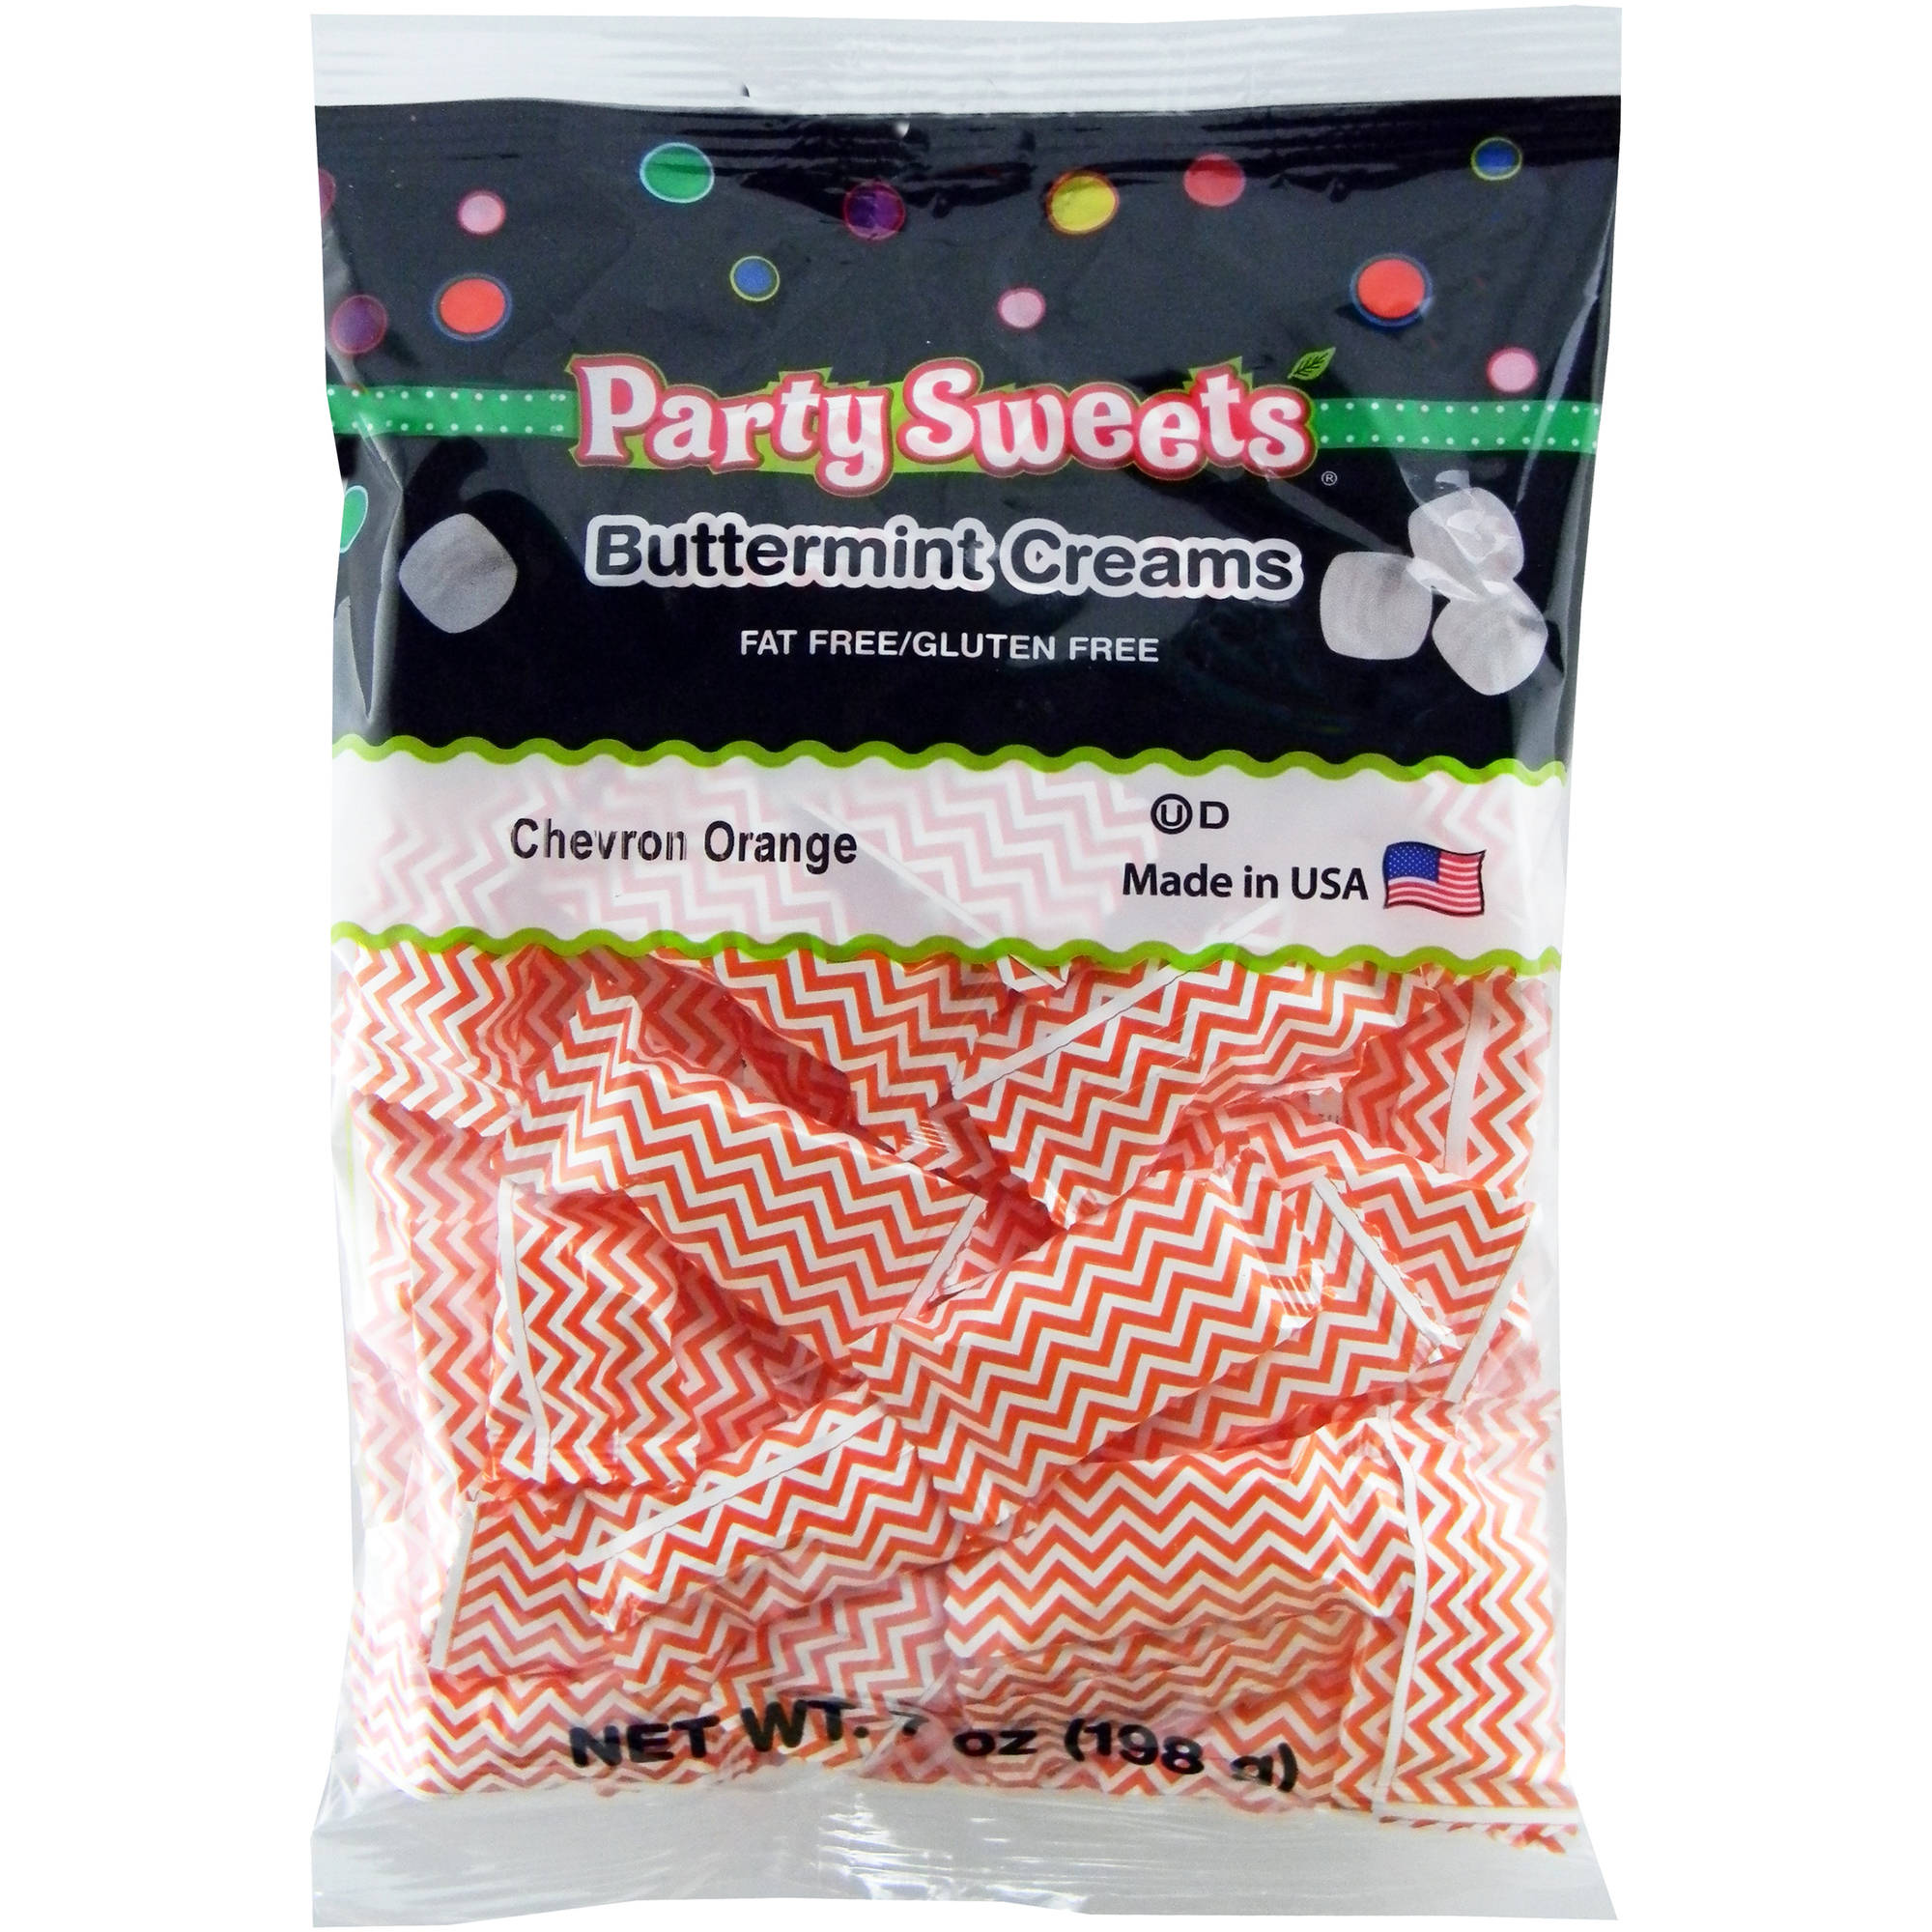 Party Sweets Chevron Orange Buttermint Creams Candy, 7 oz